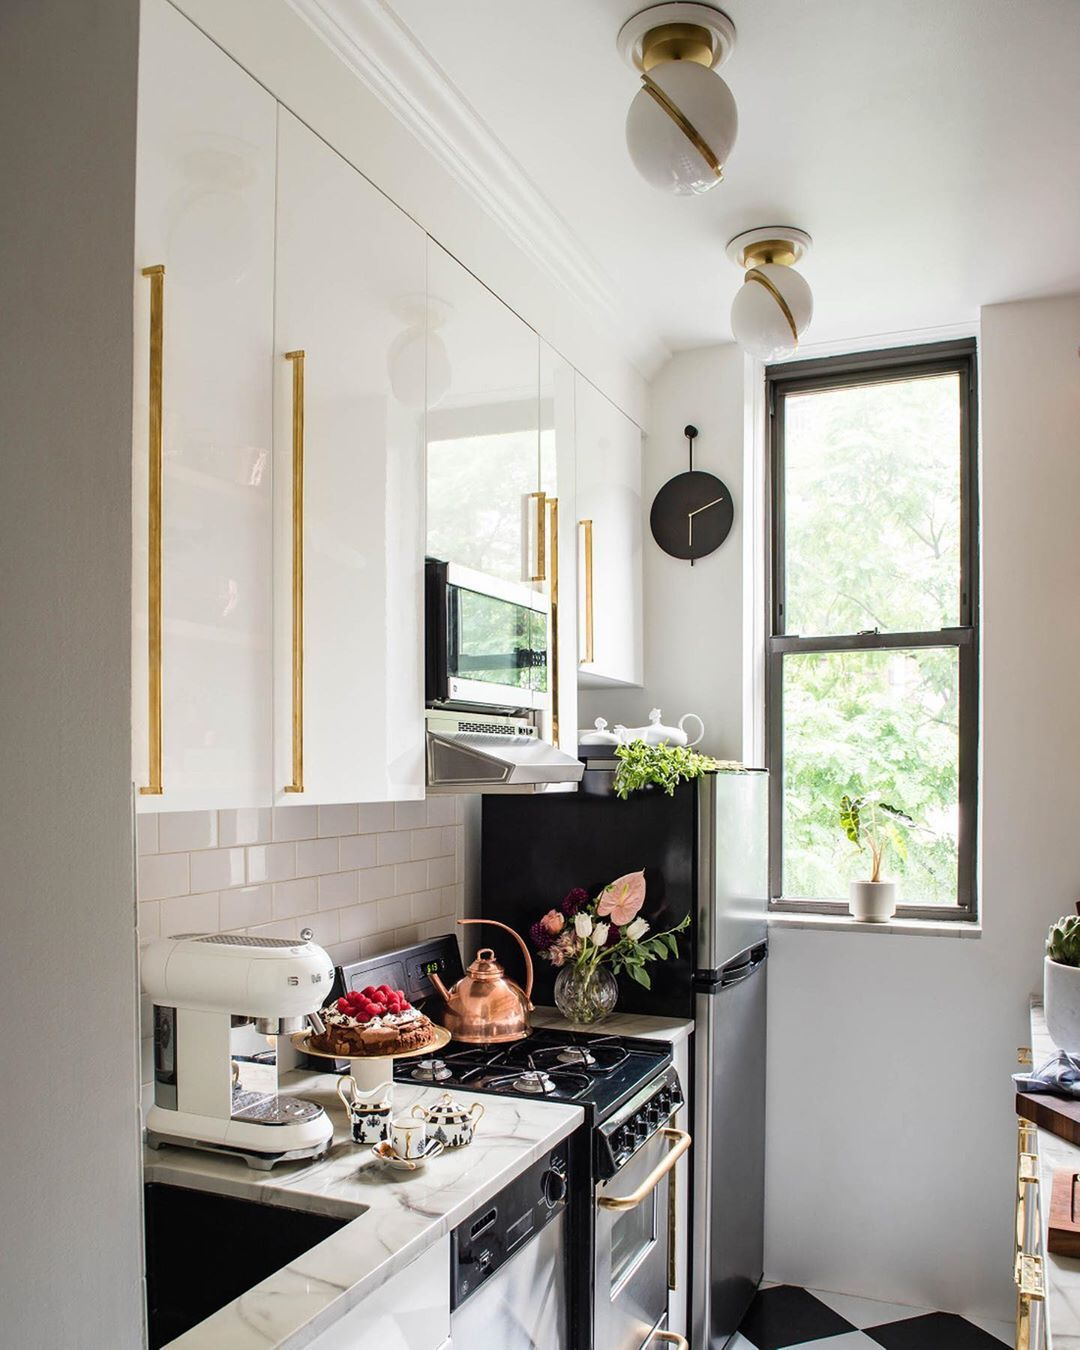 Smallspace Living: Tips For Making Your Small Kitchen Feel Super Spacious